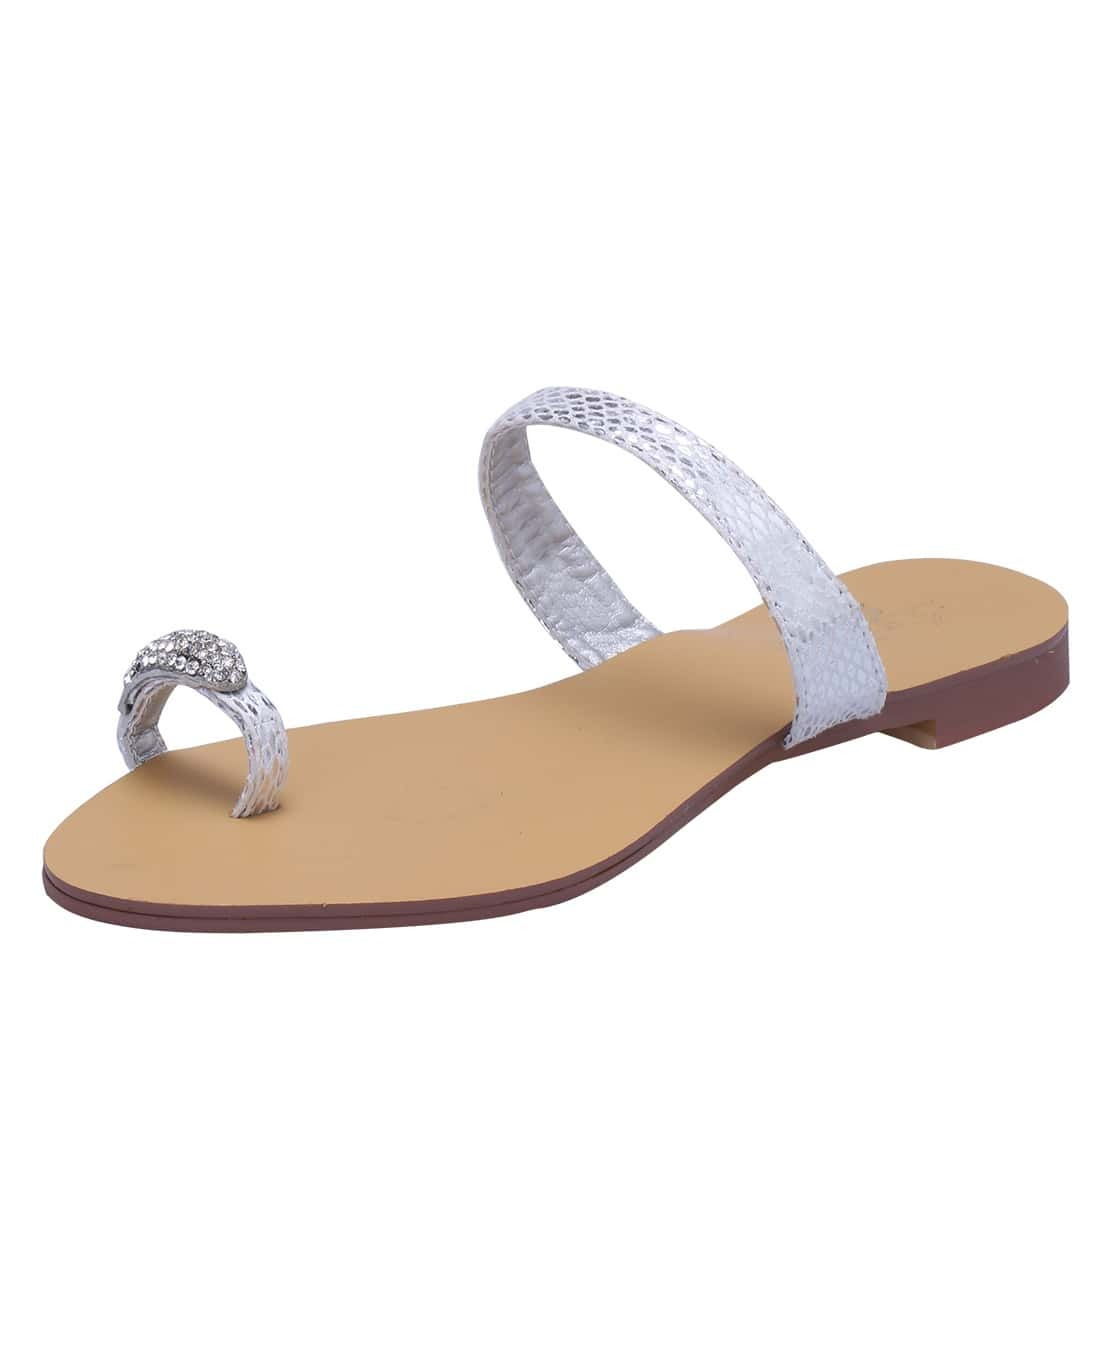 White With Rhinestone Flat Sandals -SheIn(Sheinside)